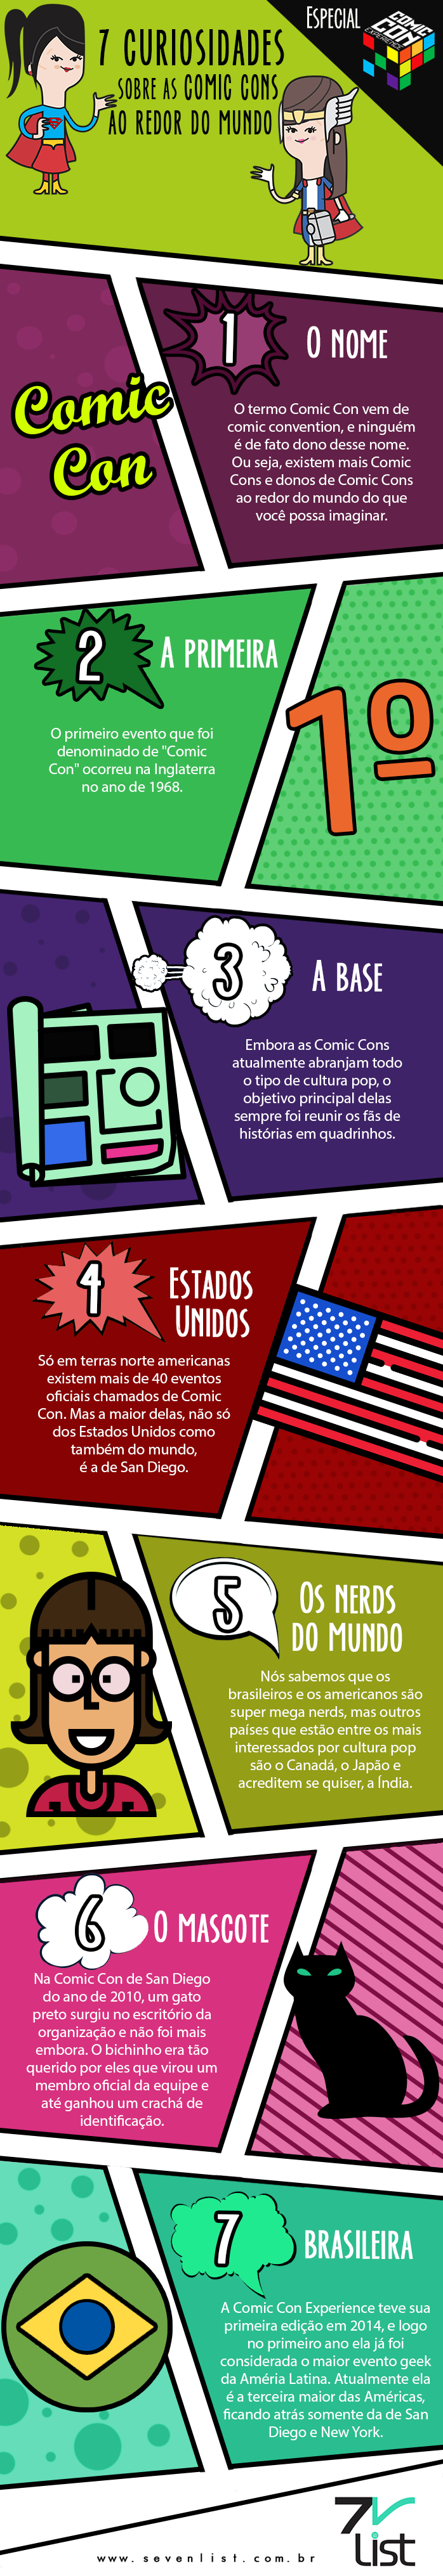 seven-list-7-curiosidades-sobre-as-comic-cons-ao-redor-do-mundo